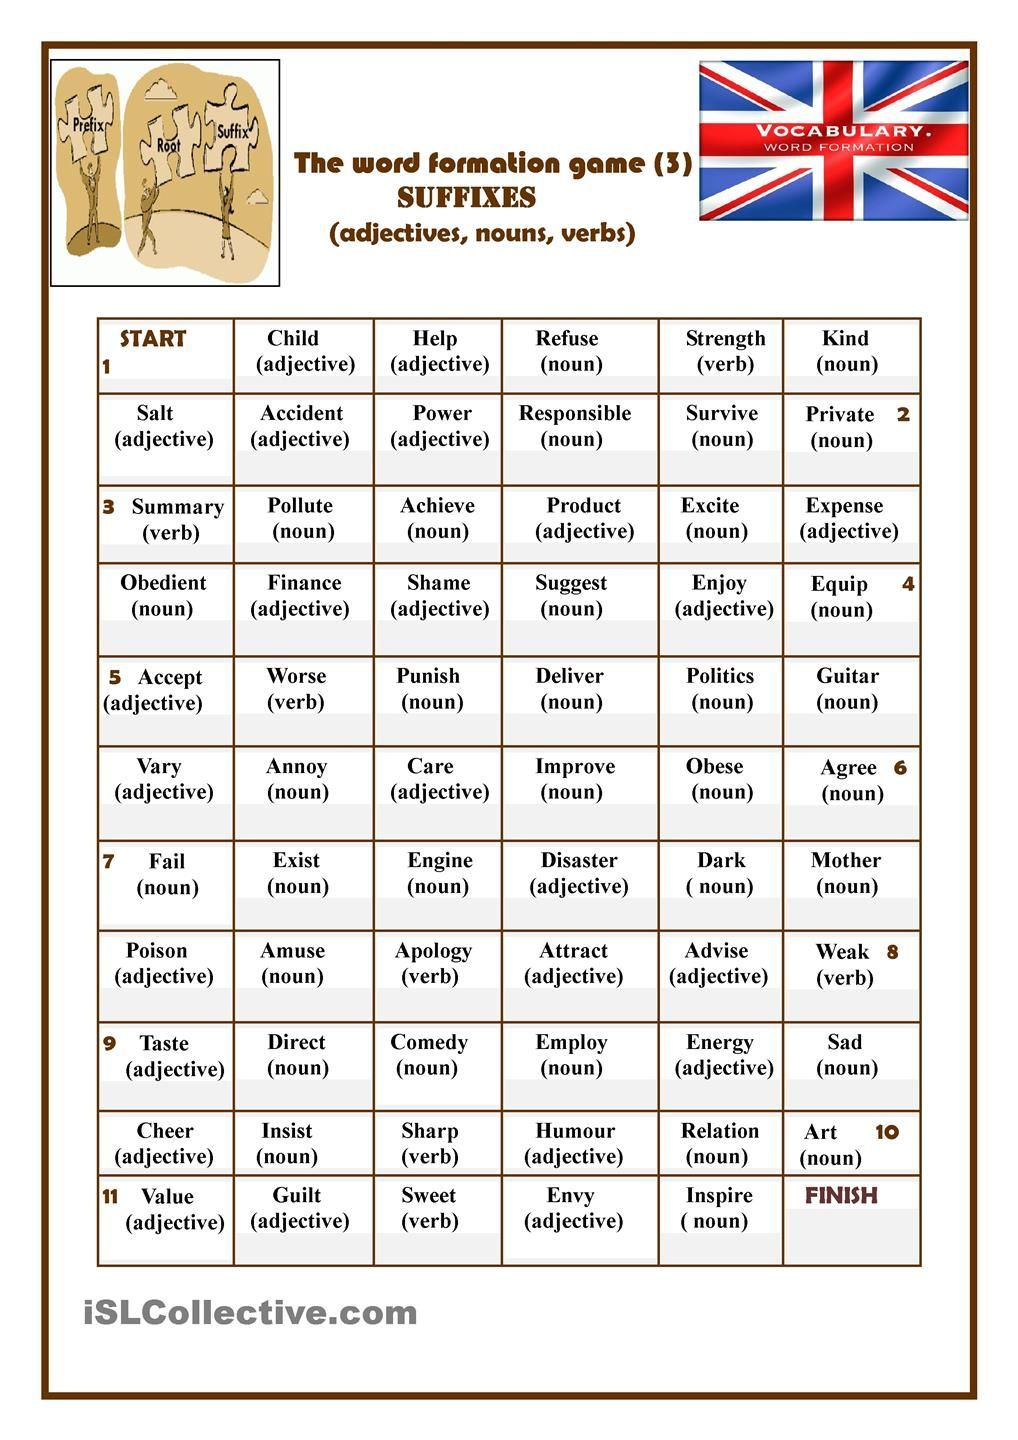 The Word Formation Game 3 Suffixes Word Formation Teaching Suffixes Words [ 1440 x 1018 Pixel ]